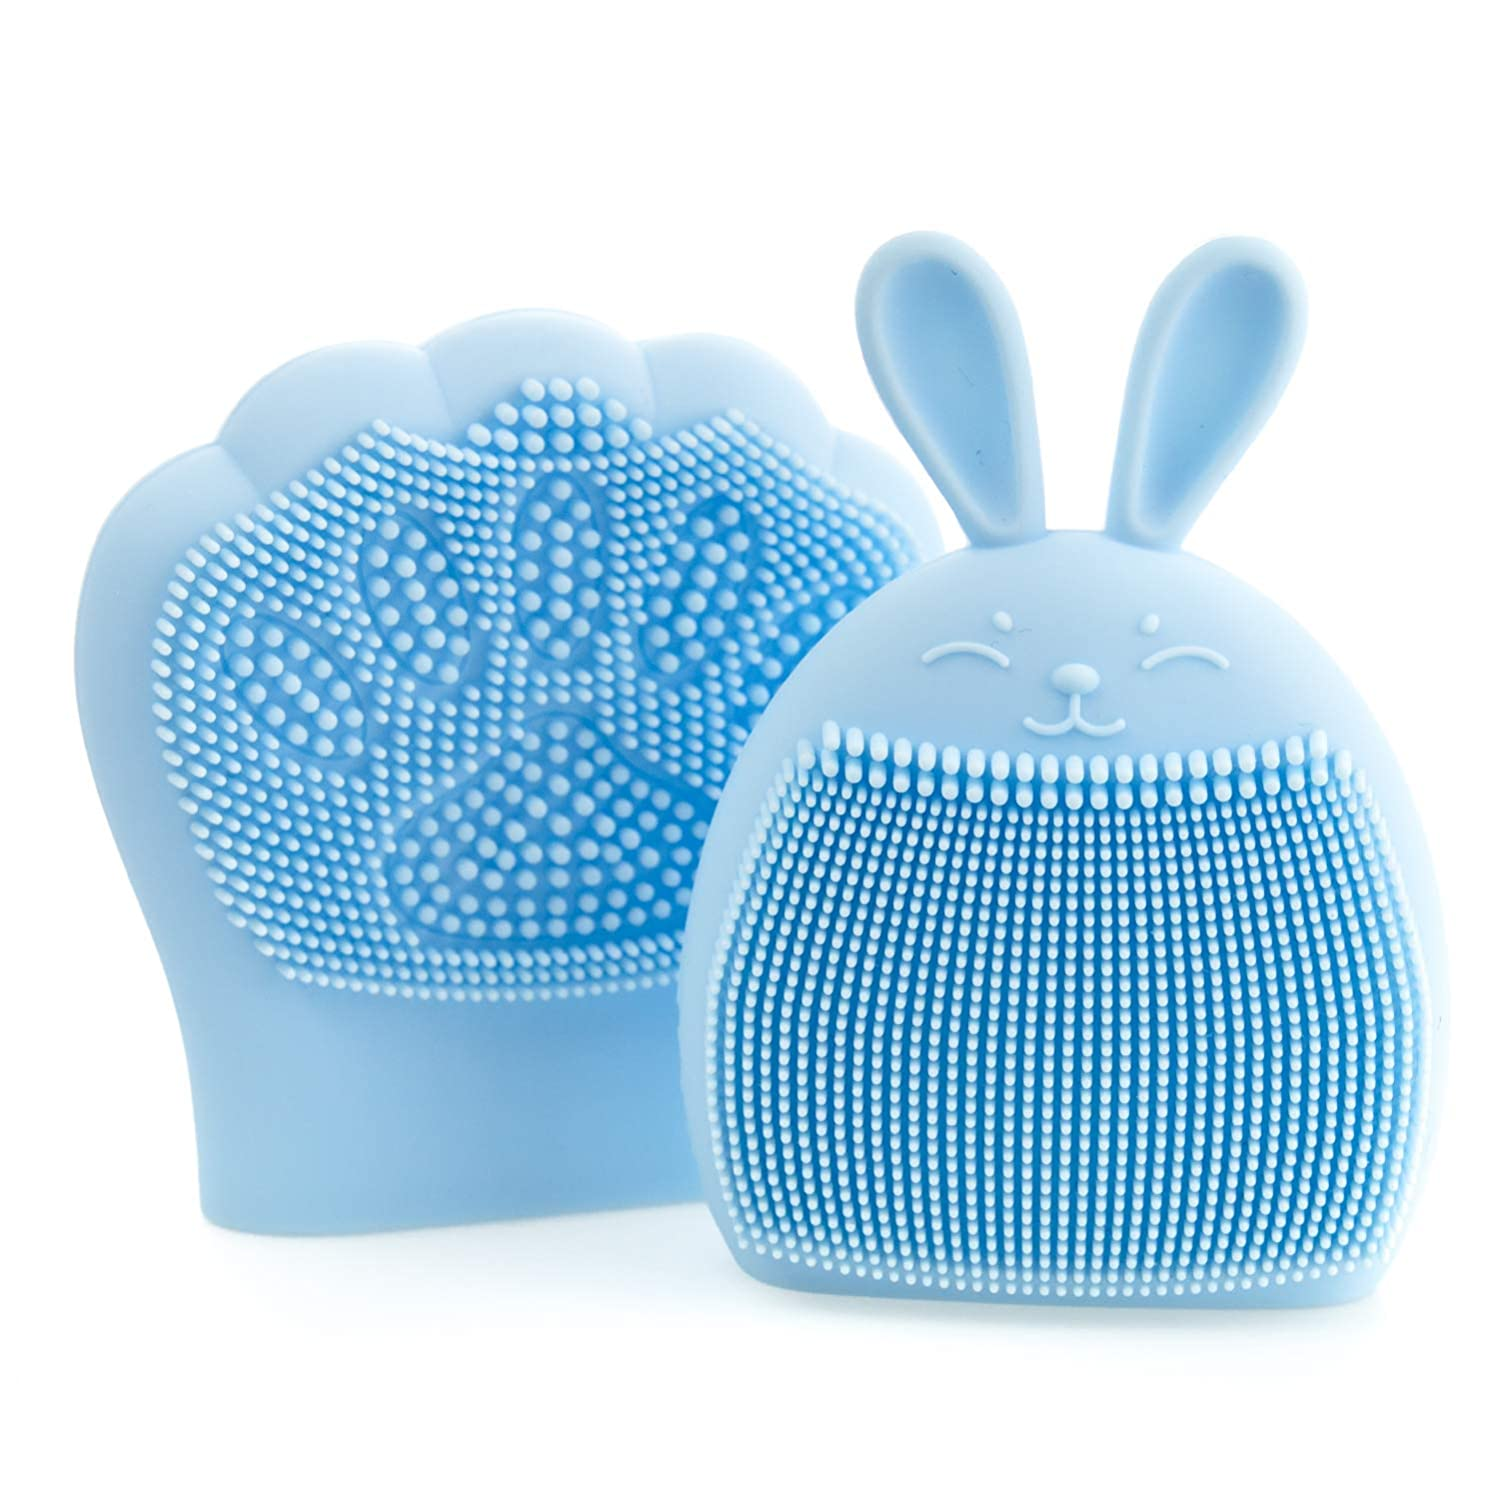 NEW before selling ☆ BABY K Baby Bath Brush Set Silicone Cr Blue - Shape Al sold out. Bunny